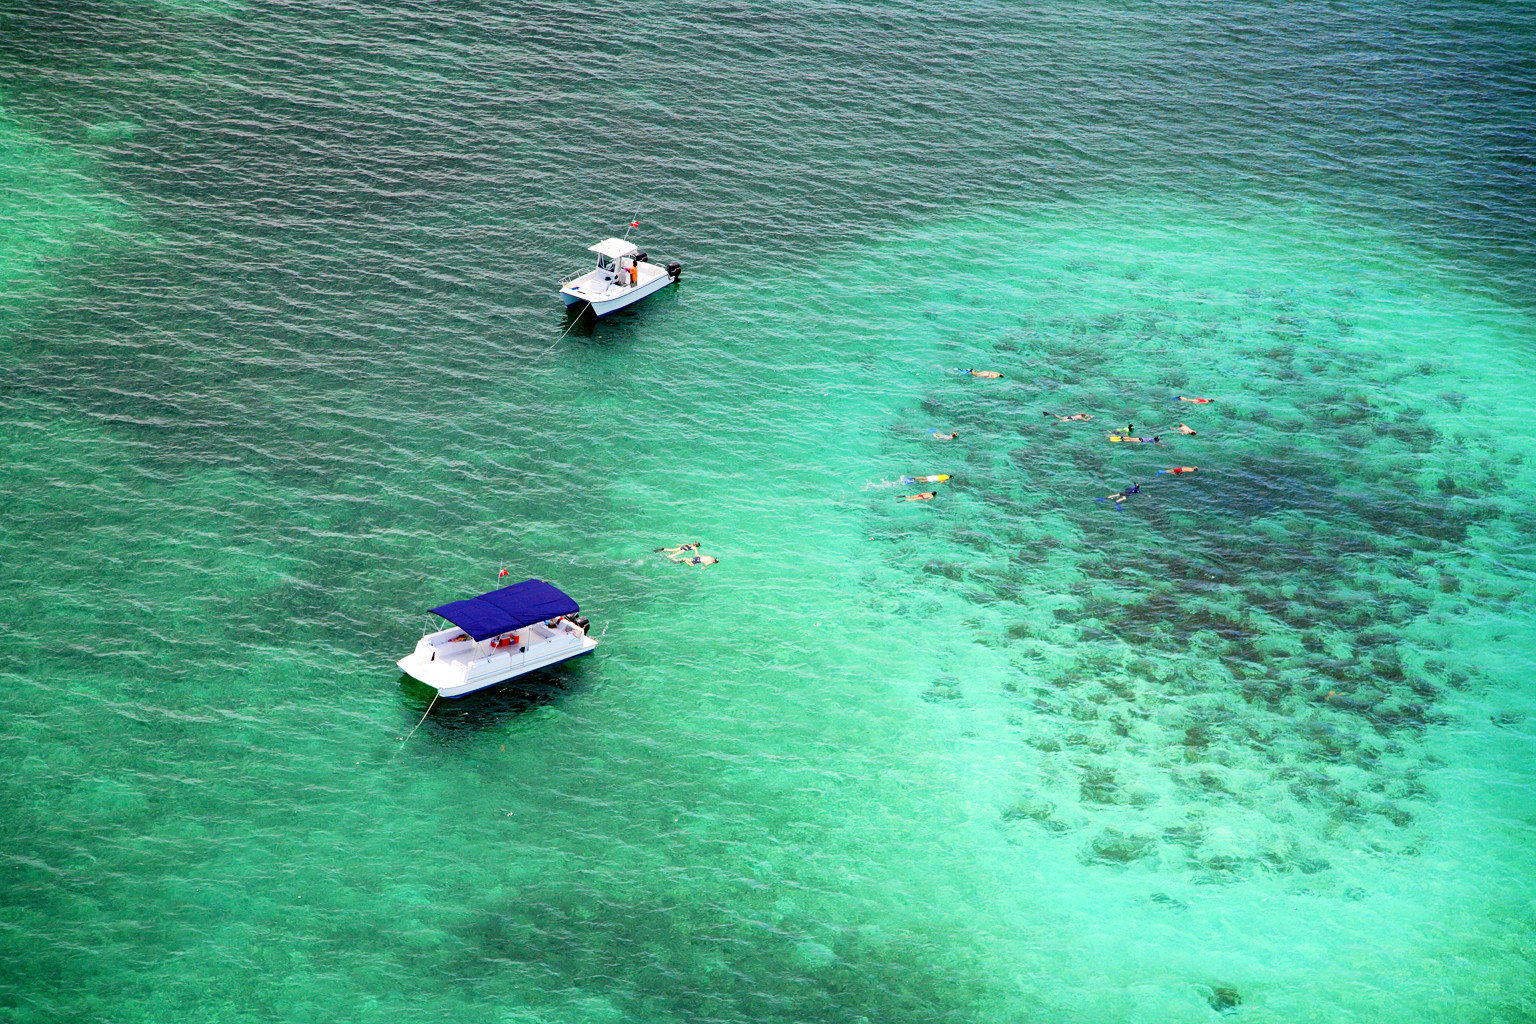 Beachfront Boat Eco Hotels Play Resort Romance Scenic views water outdoor Sea floating Ocean underwater reef swimming surrounded